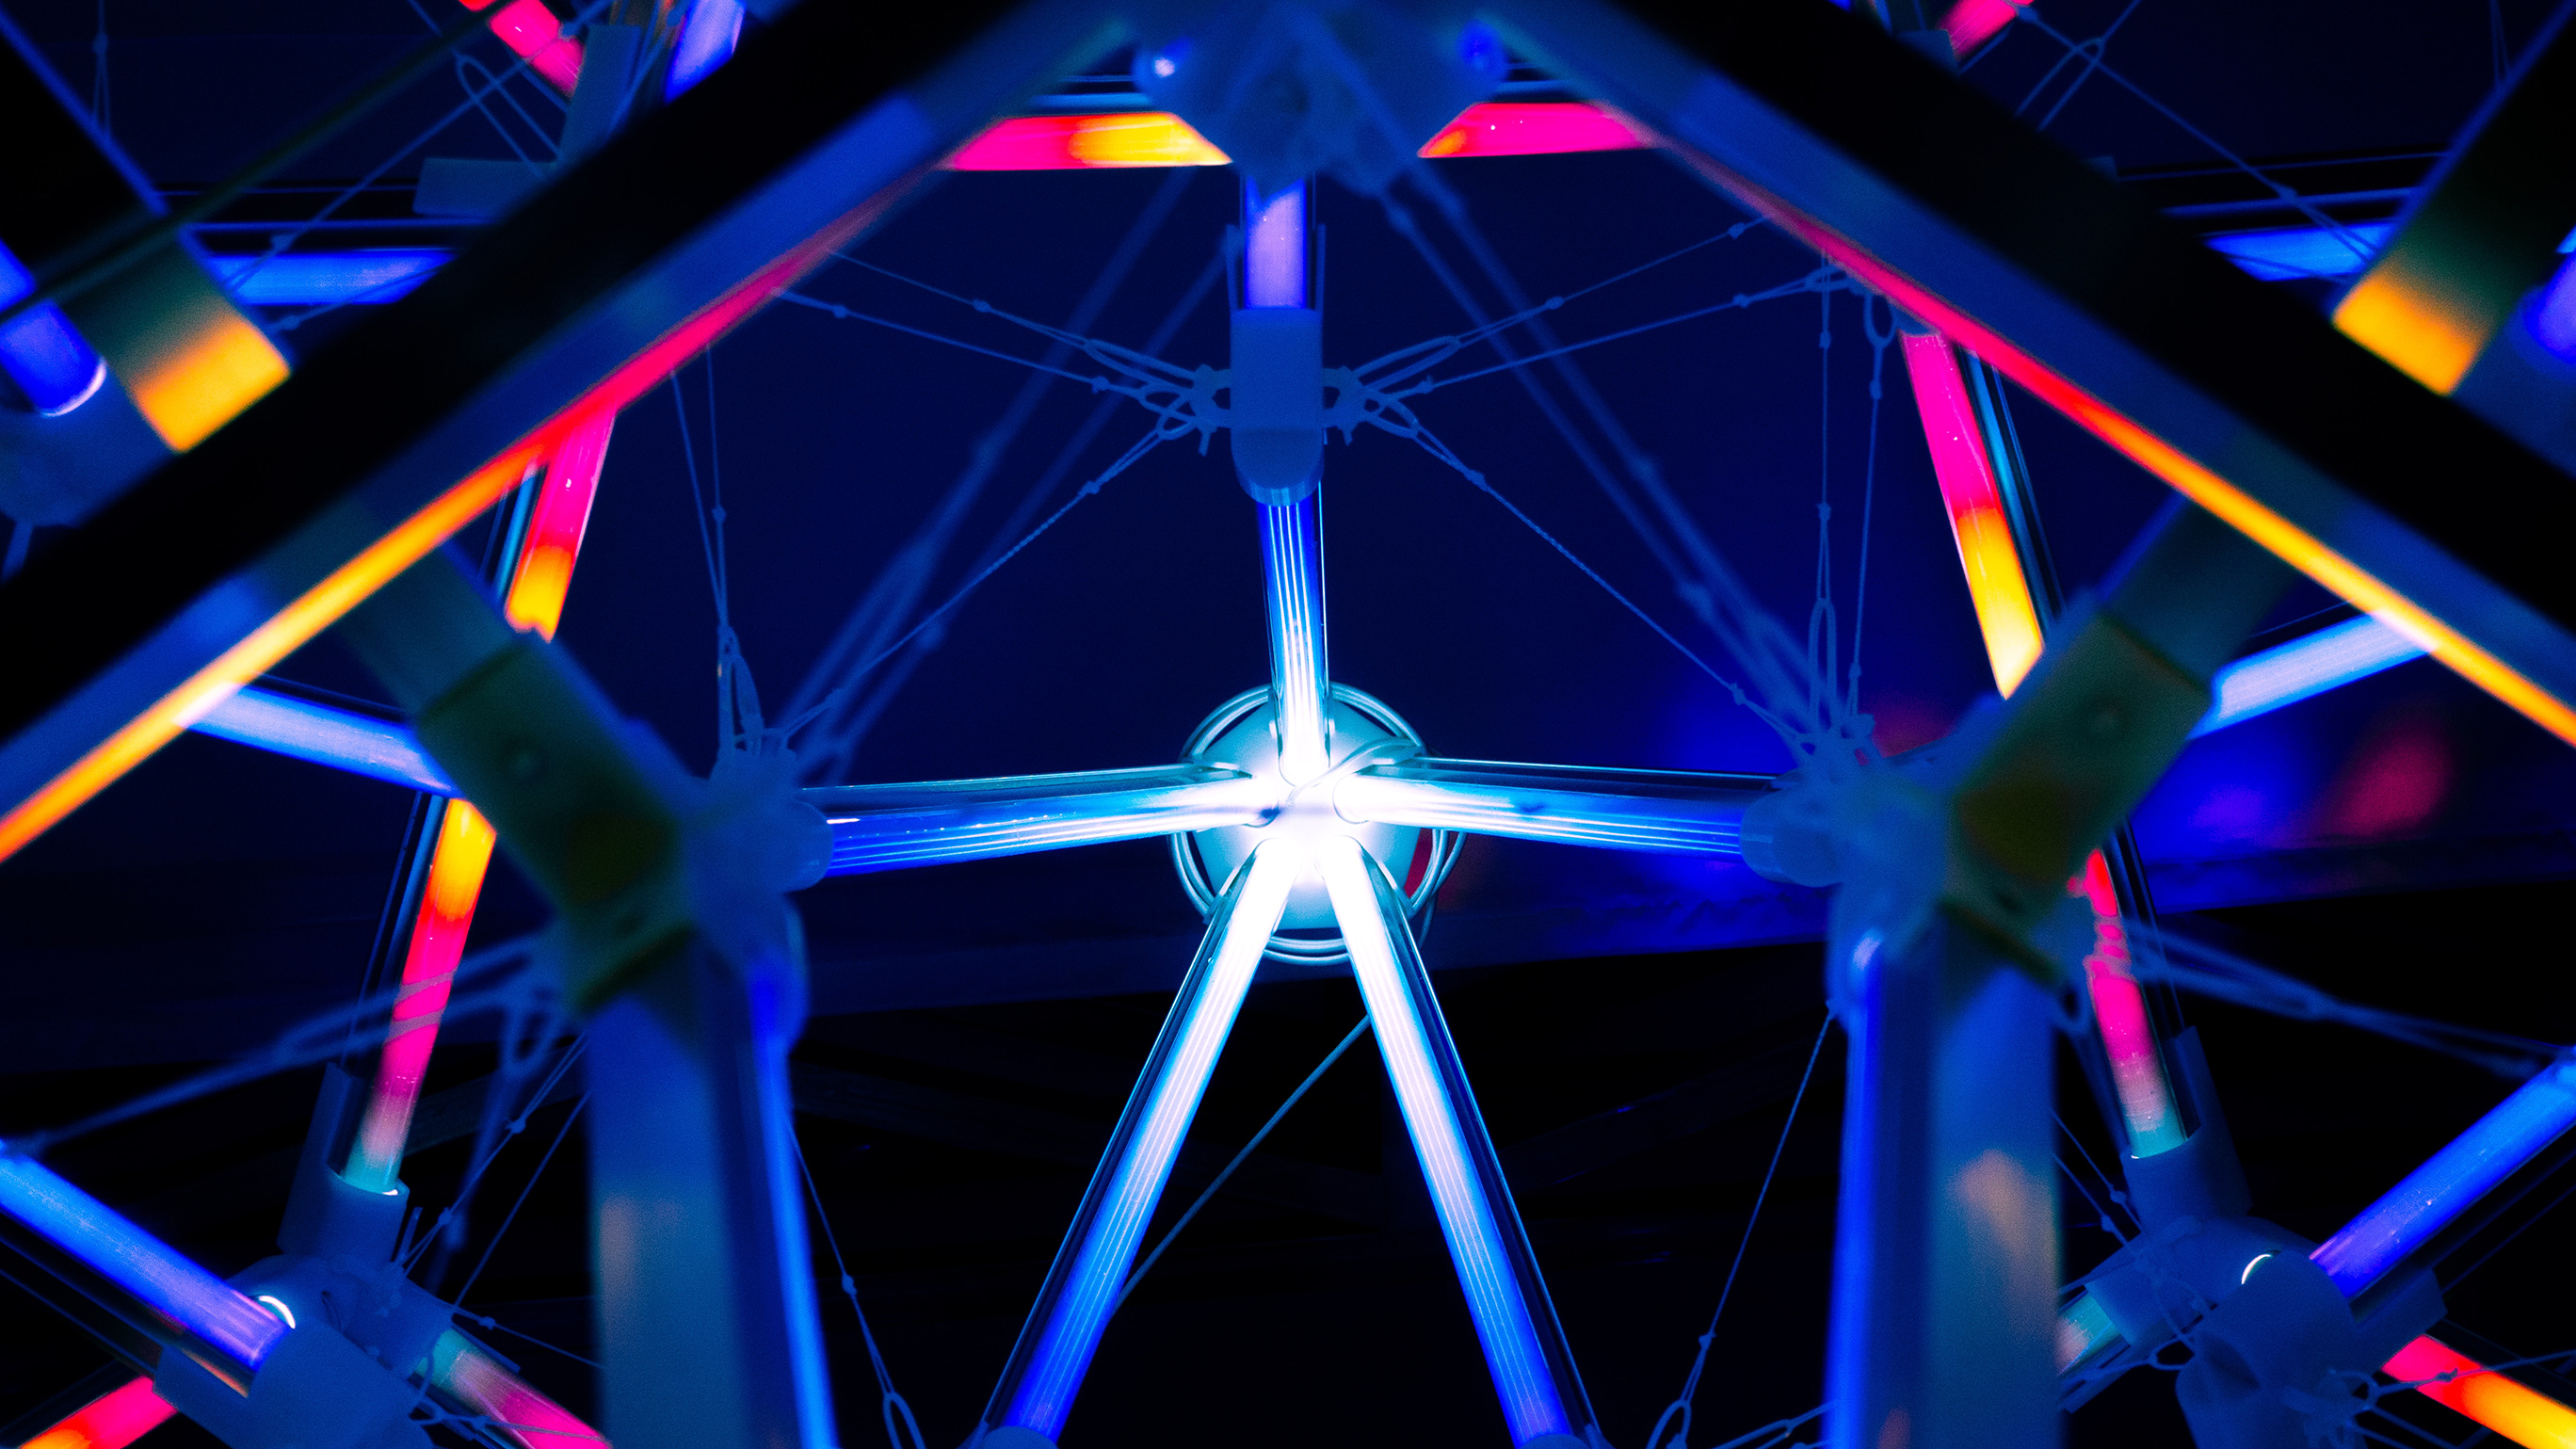 Segment routing in the 5G era